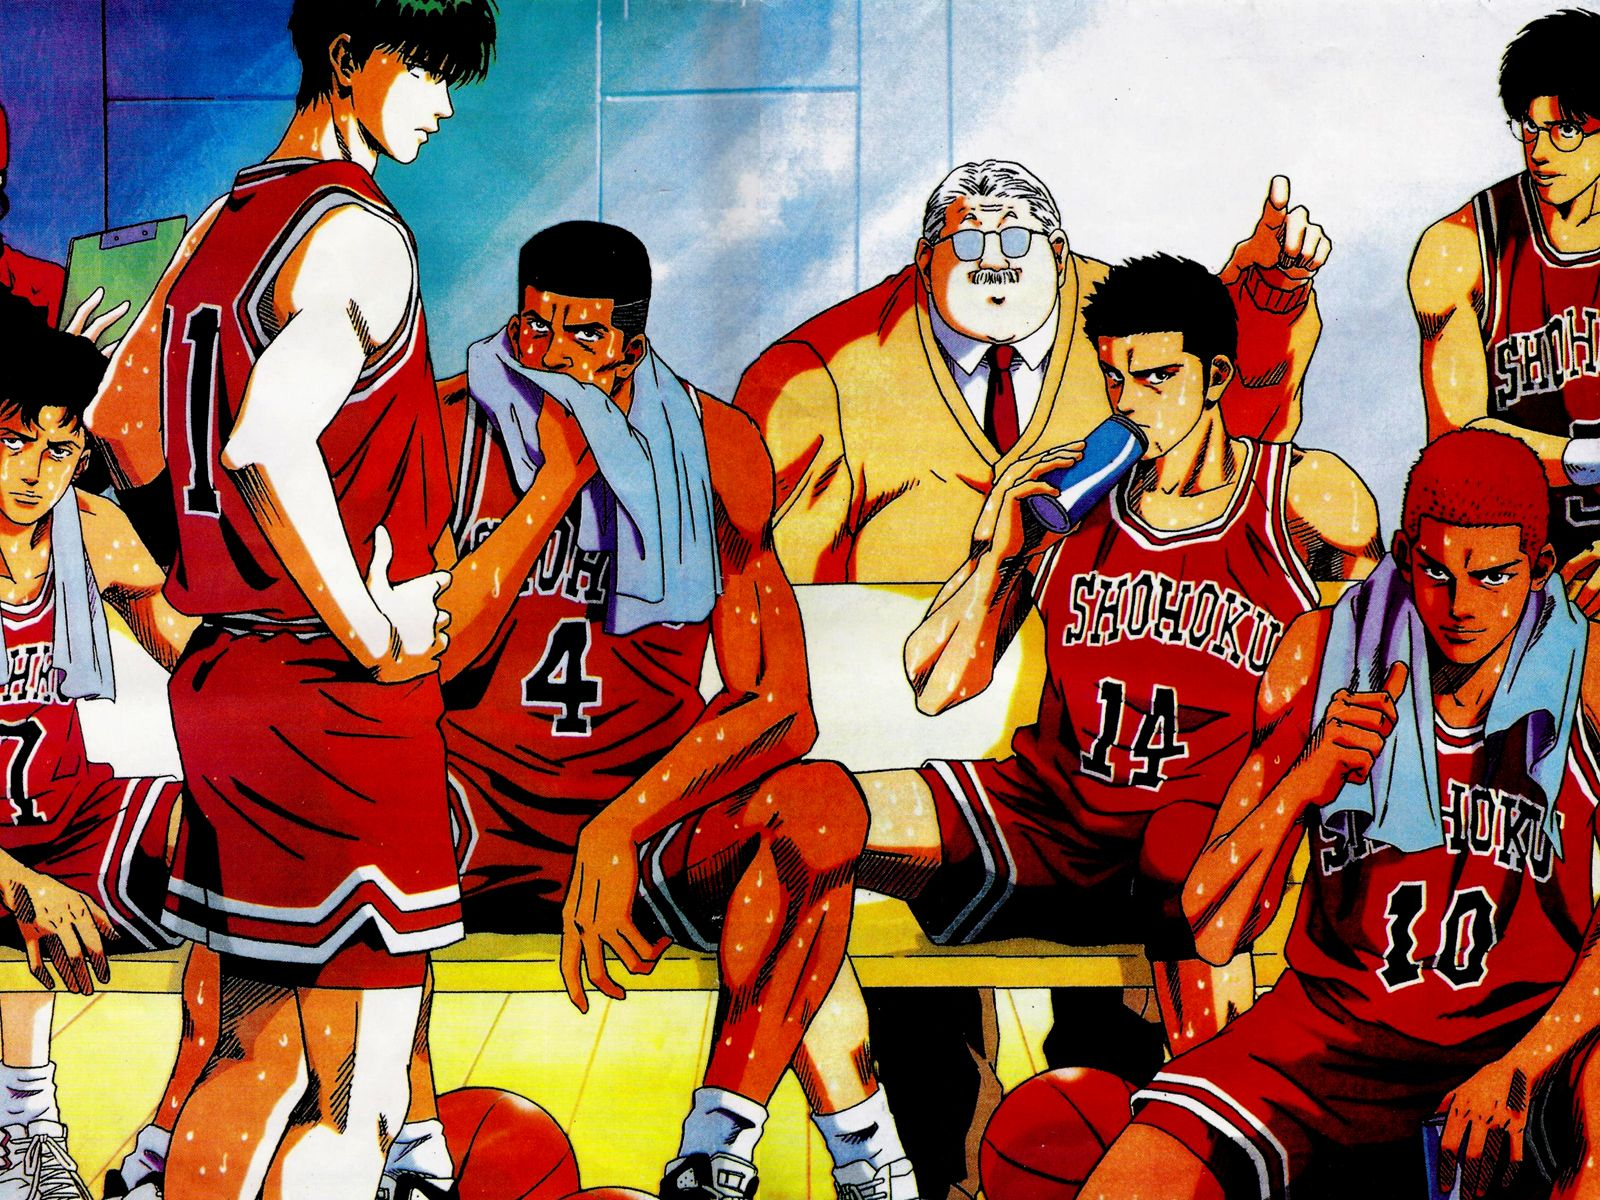 Pin By Jhesster Timbang On Anime Slam Dunk Anime Slam Dunk Manga Slam Dunk